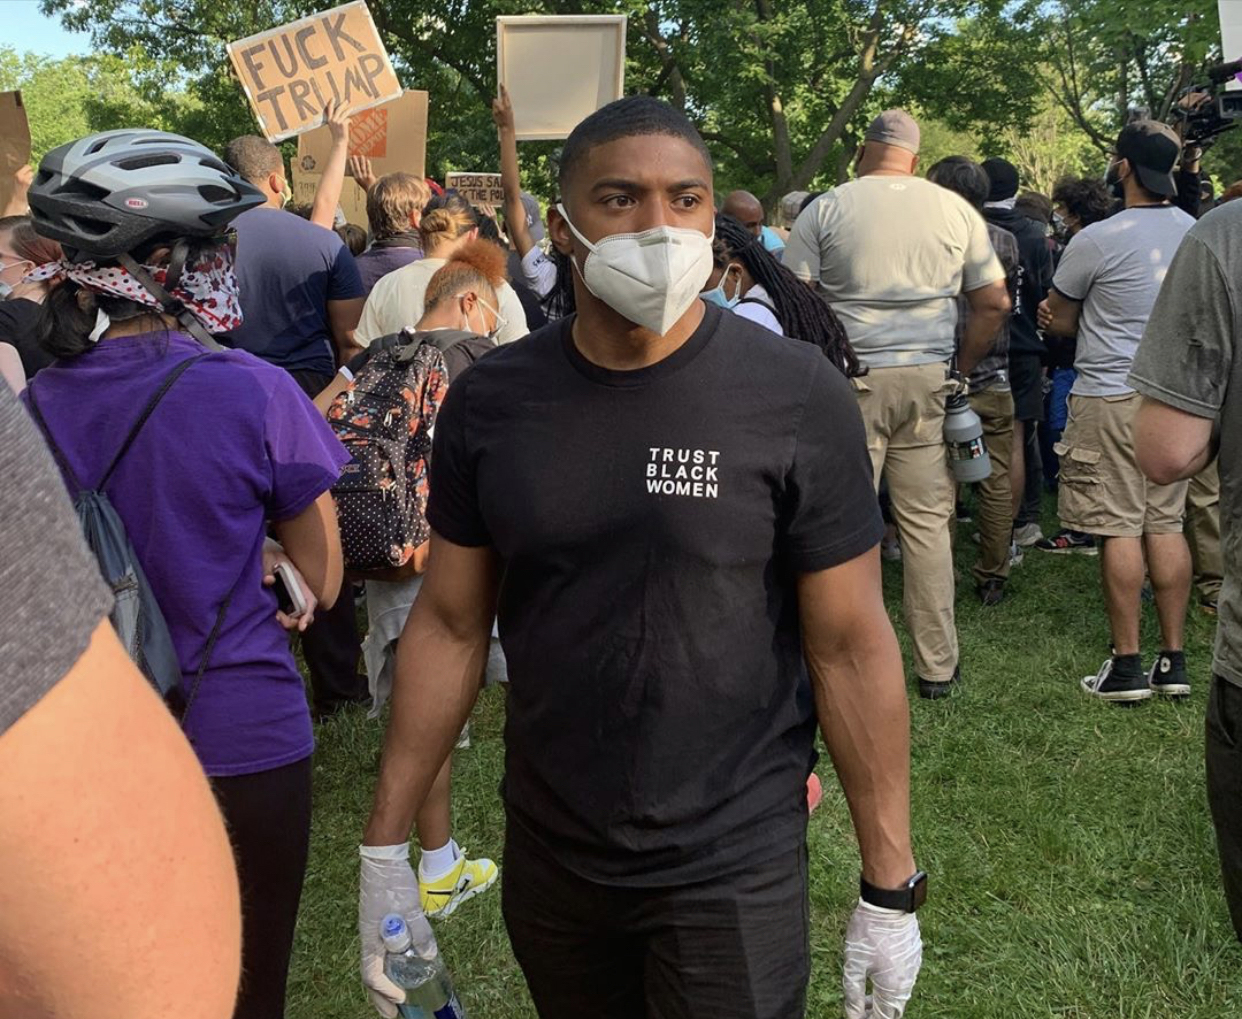 BLM protestor in District of Clothing 'Trust Black Women' t-shirt.